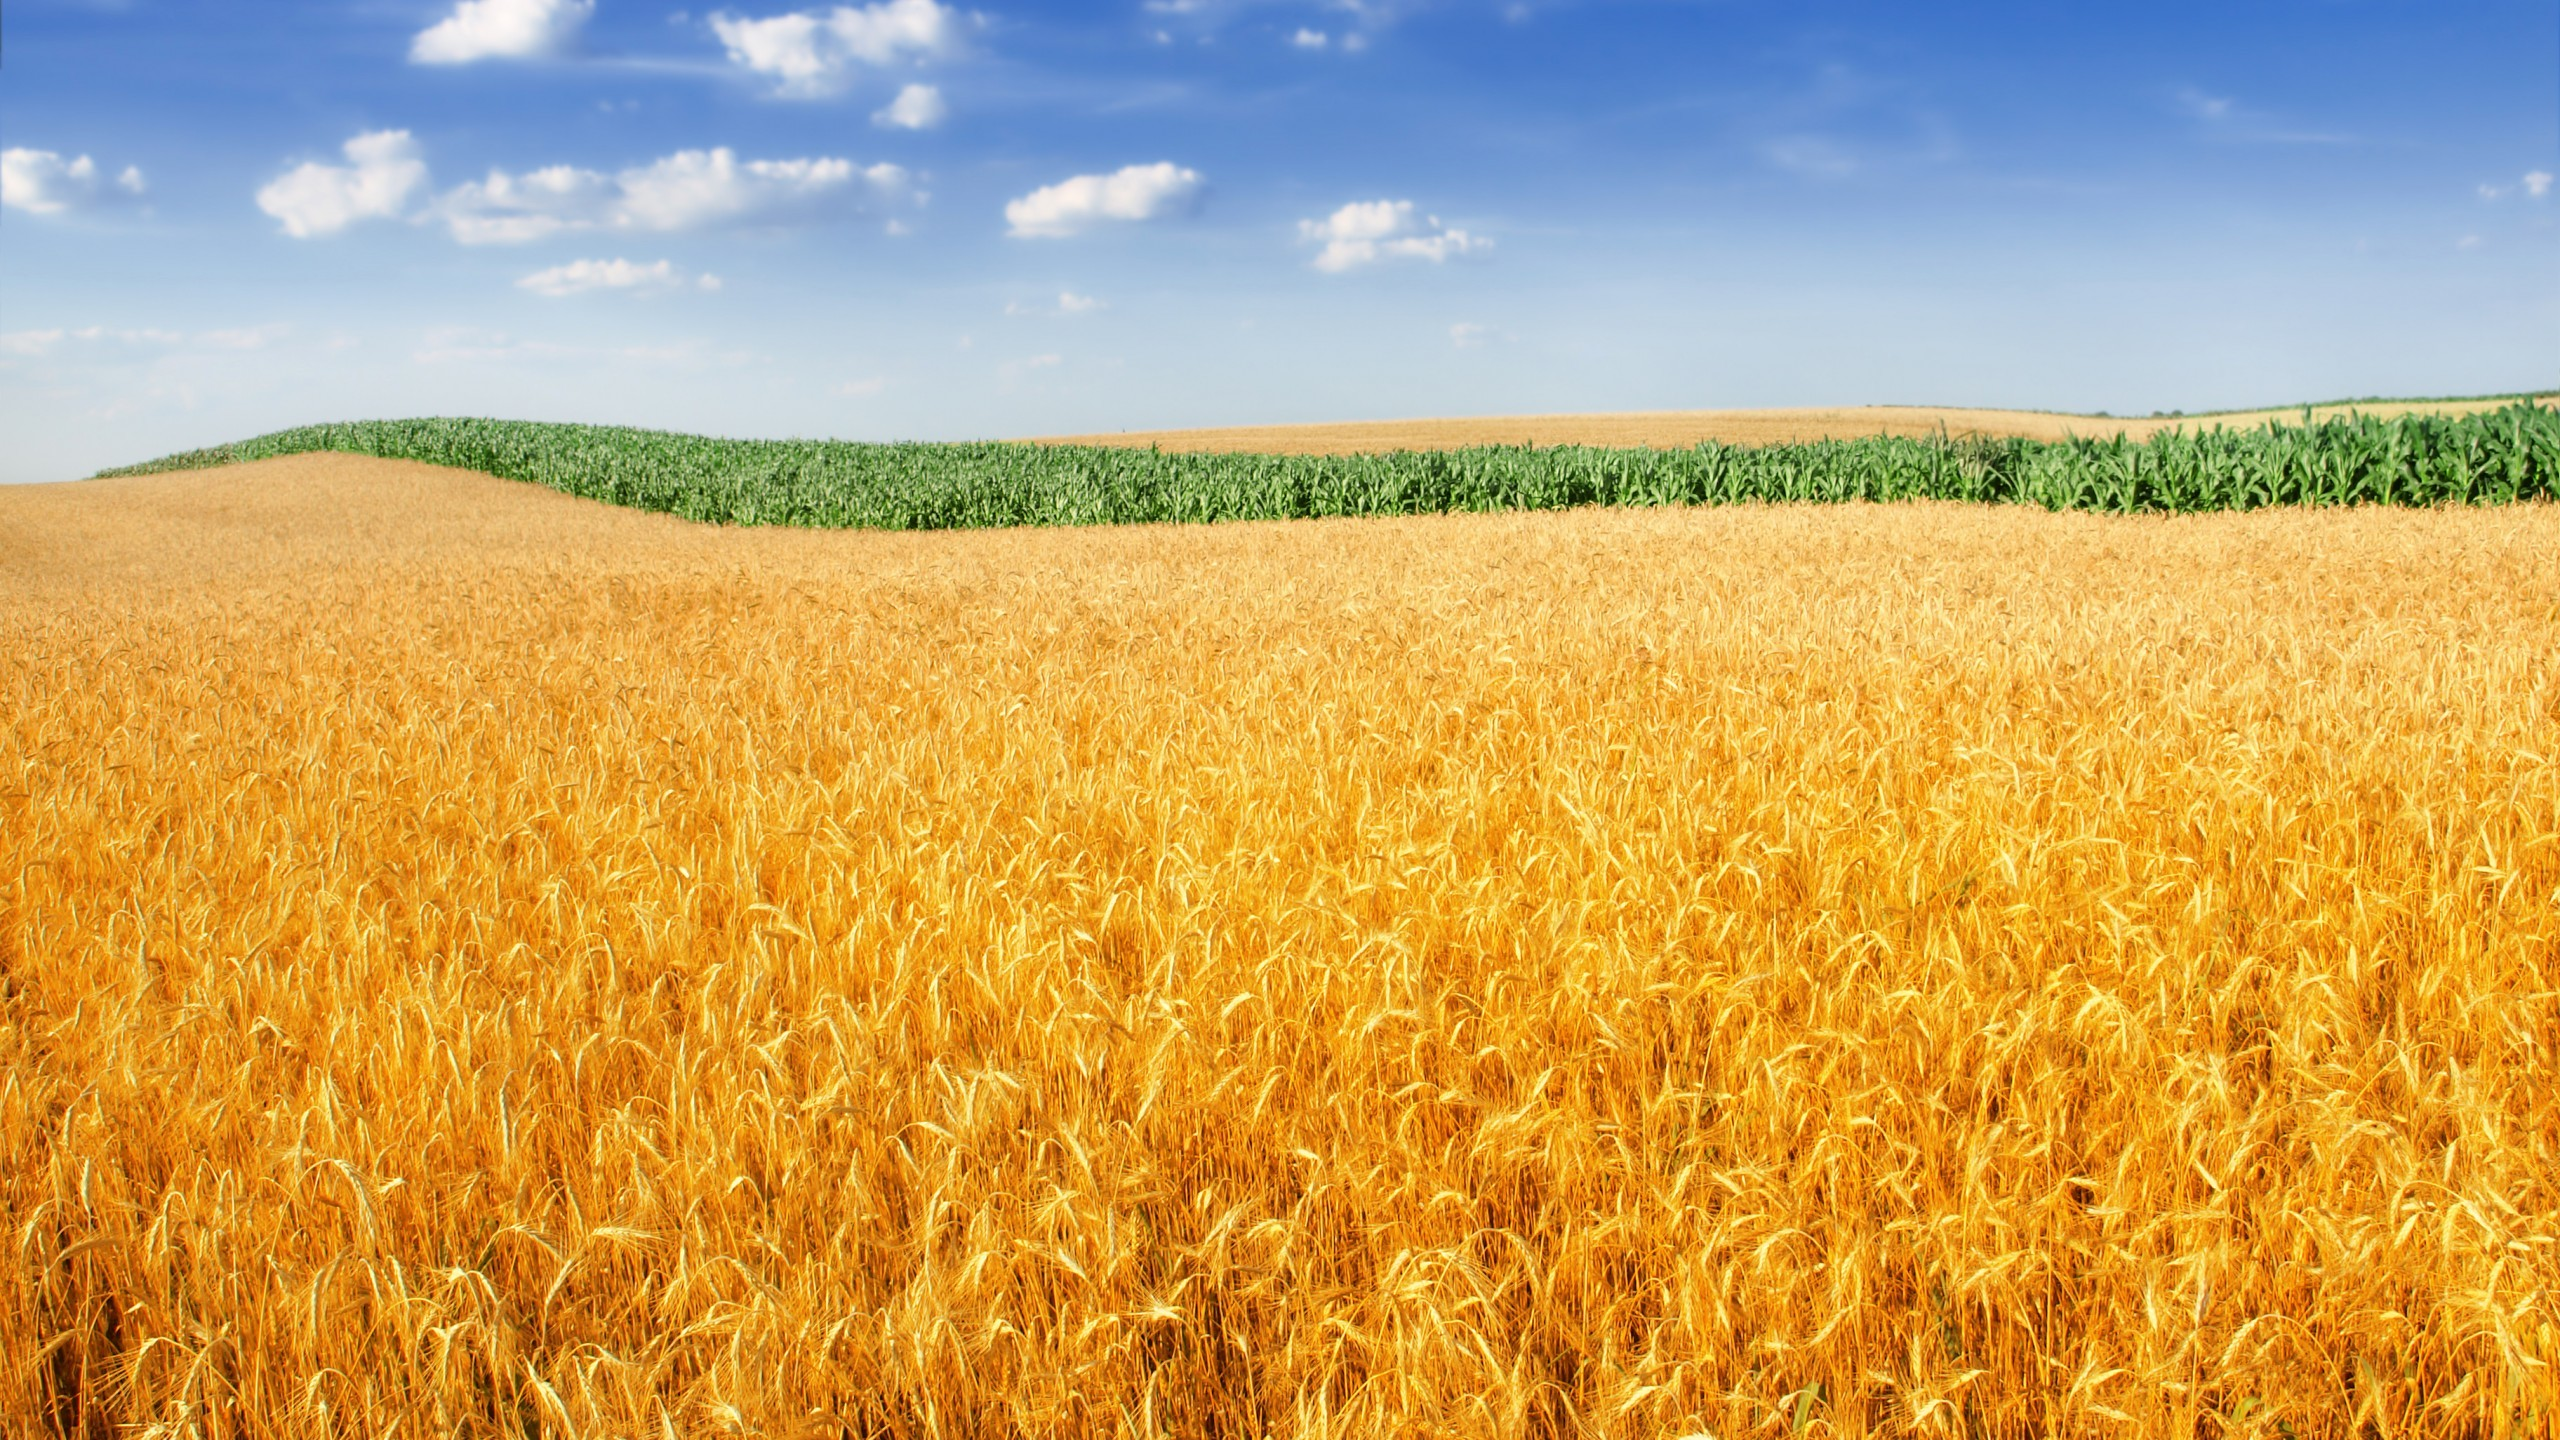 Wallpaper Field 4k Hd Wallpaper Wheat Spikes Sky: Fields Wallpaper (67+ Images